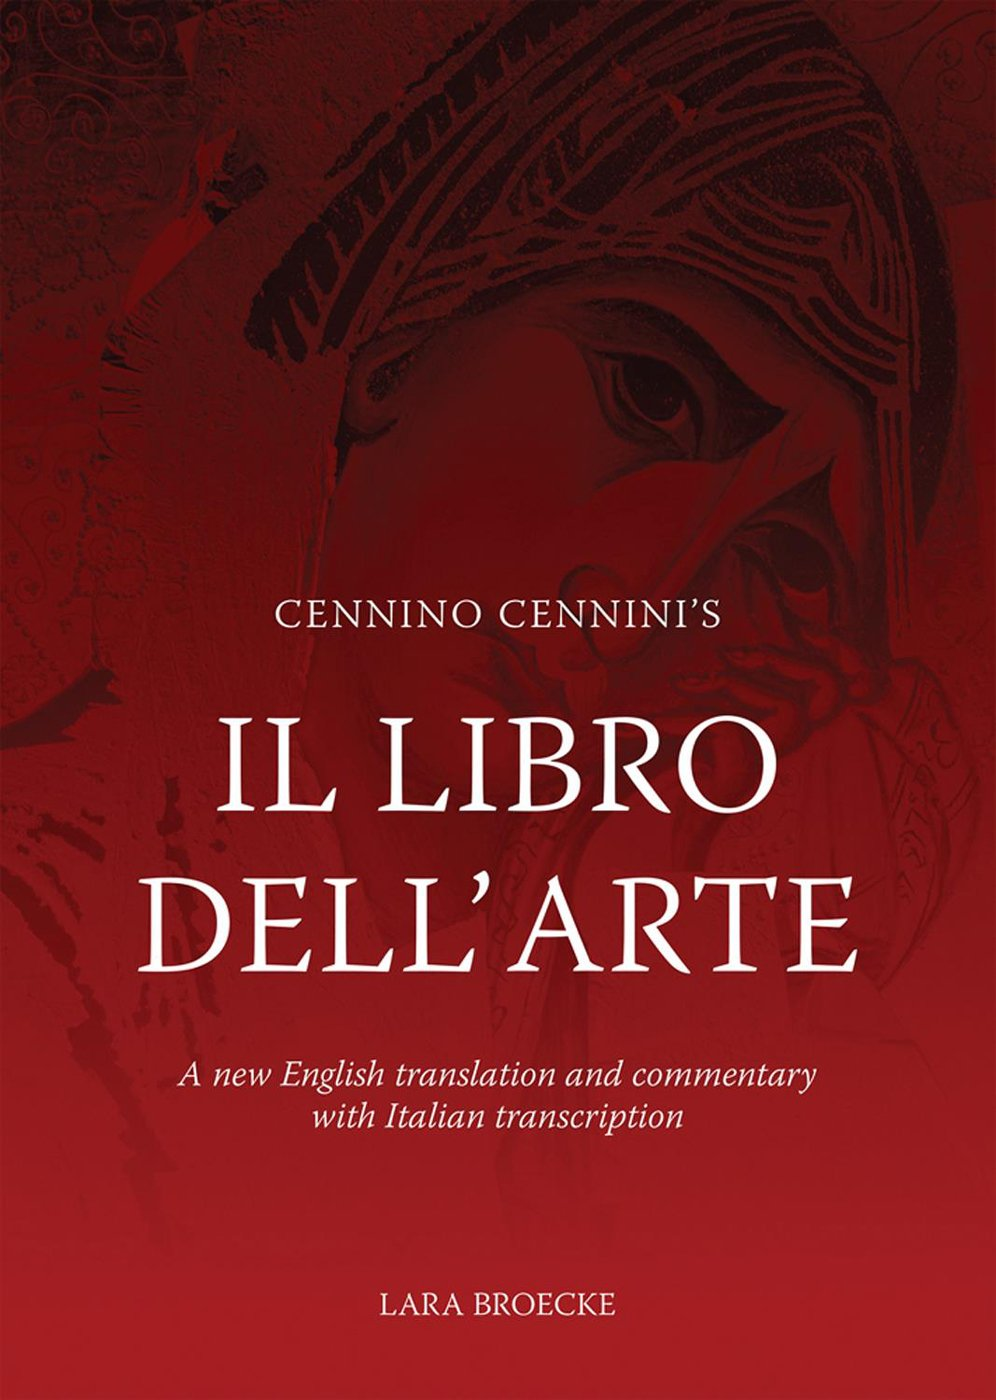 Image OfCennino Cennini's Il Libro Dell'arte: A New English Translation And Commentary With Italian Transcription